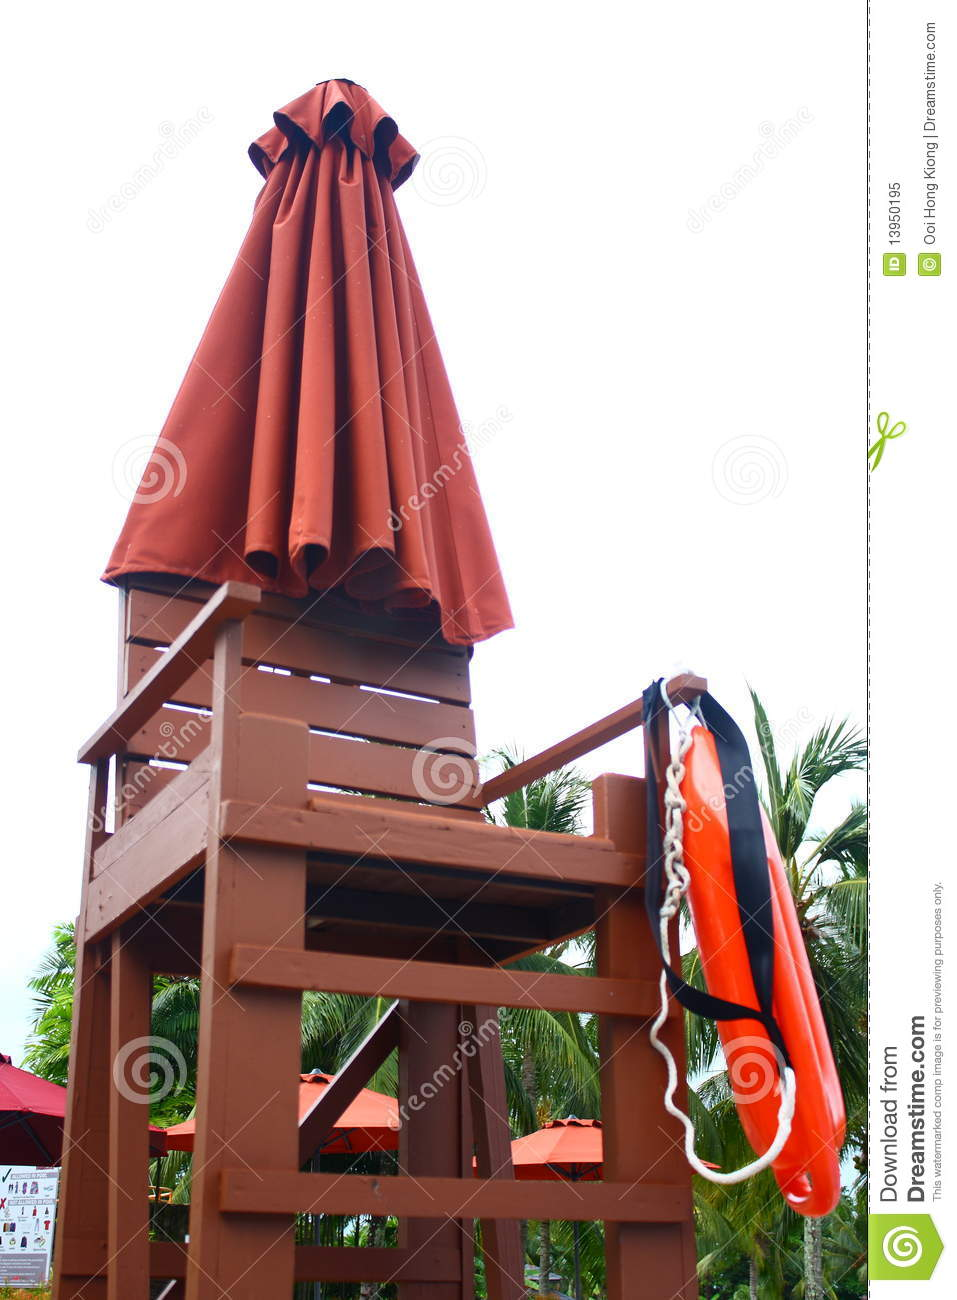 Lifeguard Chair at Poolside